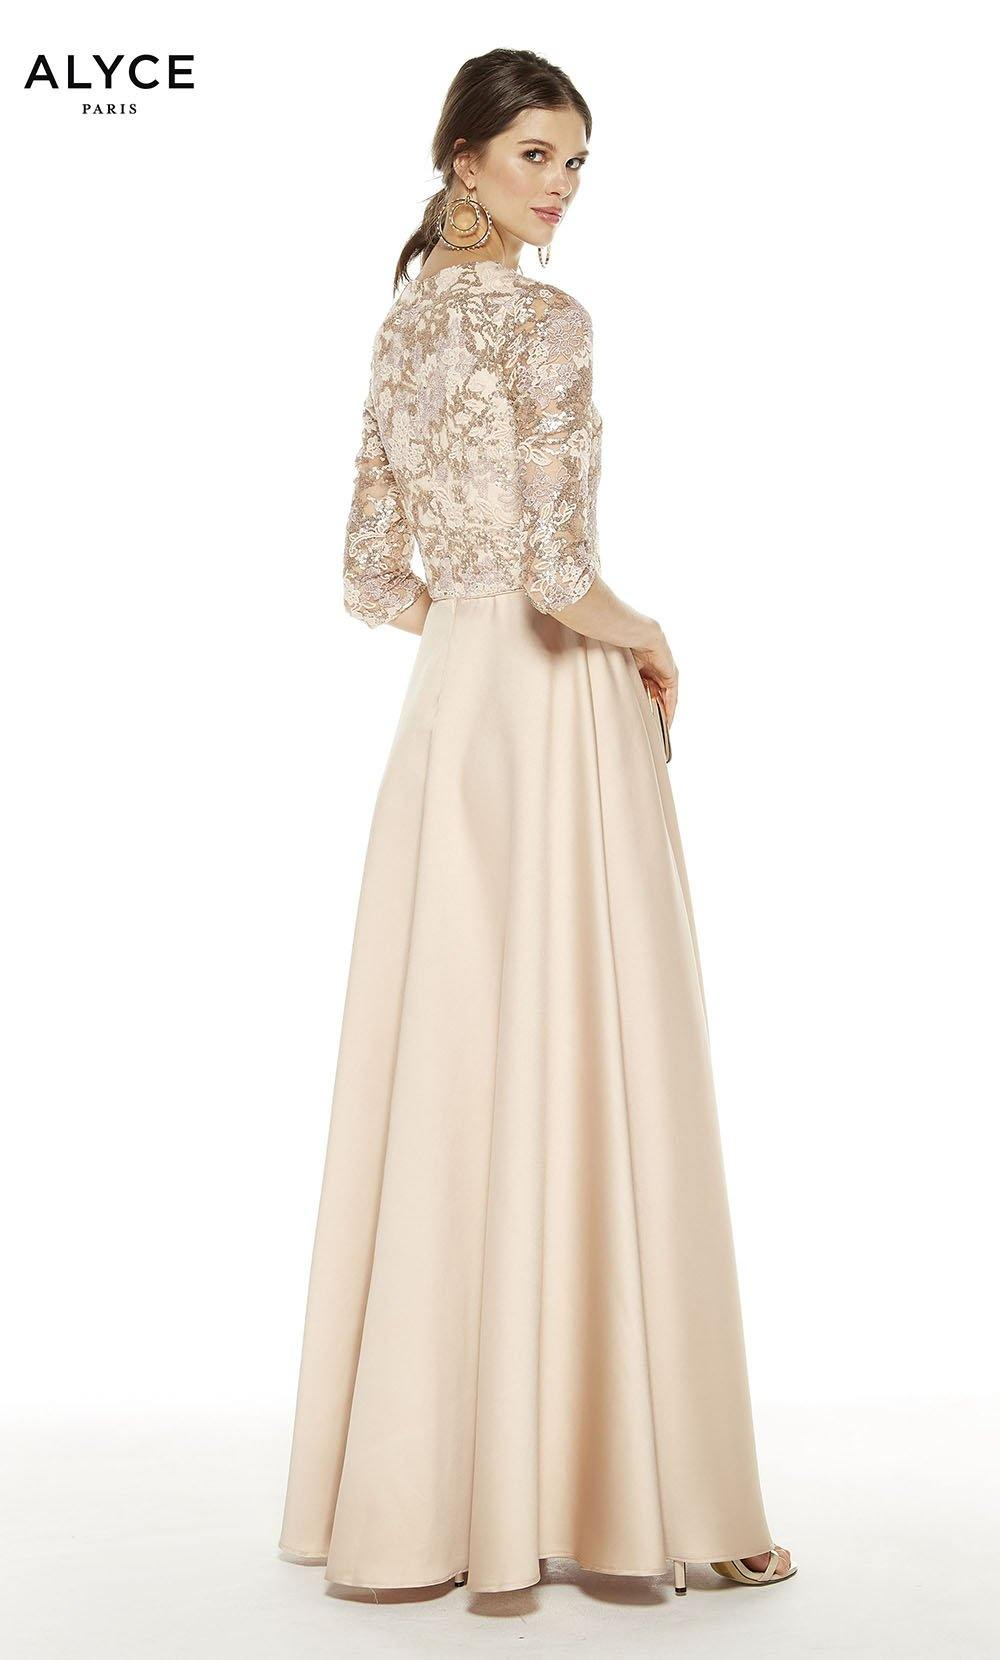 Latte colored formal gown with a V-neckline and 3/4 sleeves